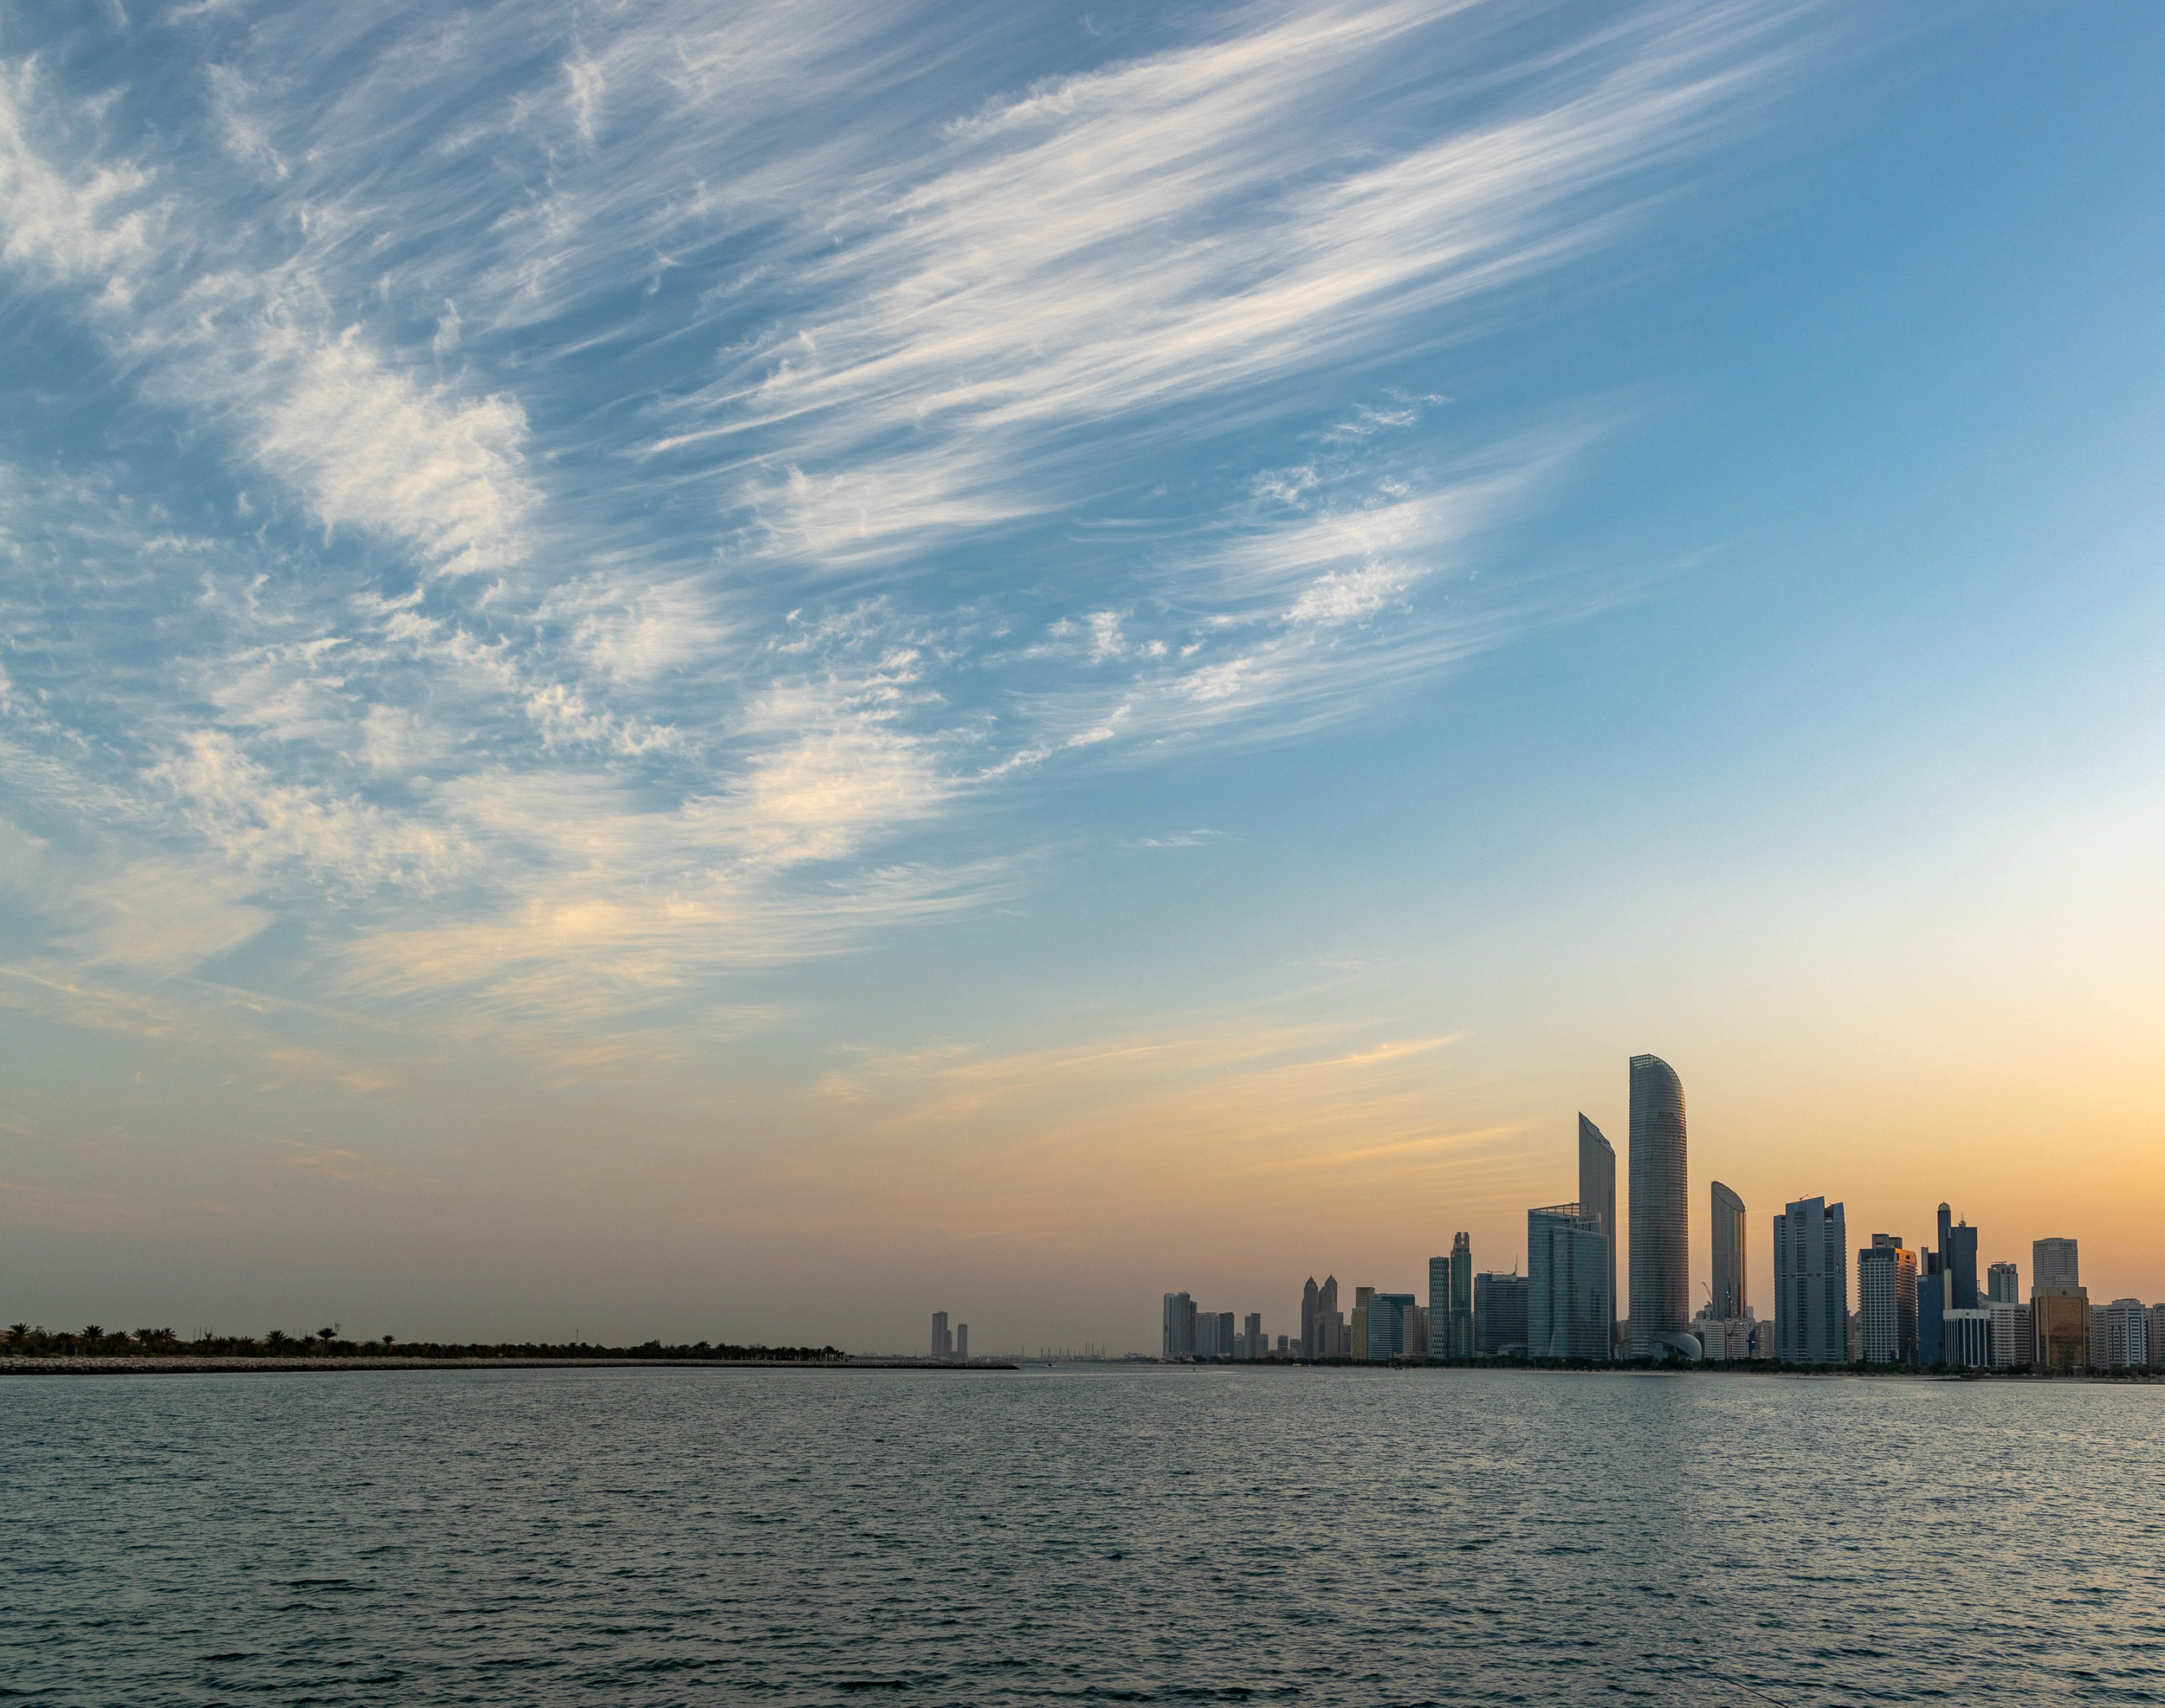 Early morning views out to the city from just up the road at Abu Dhabi Theatre